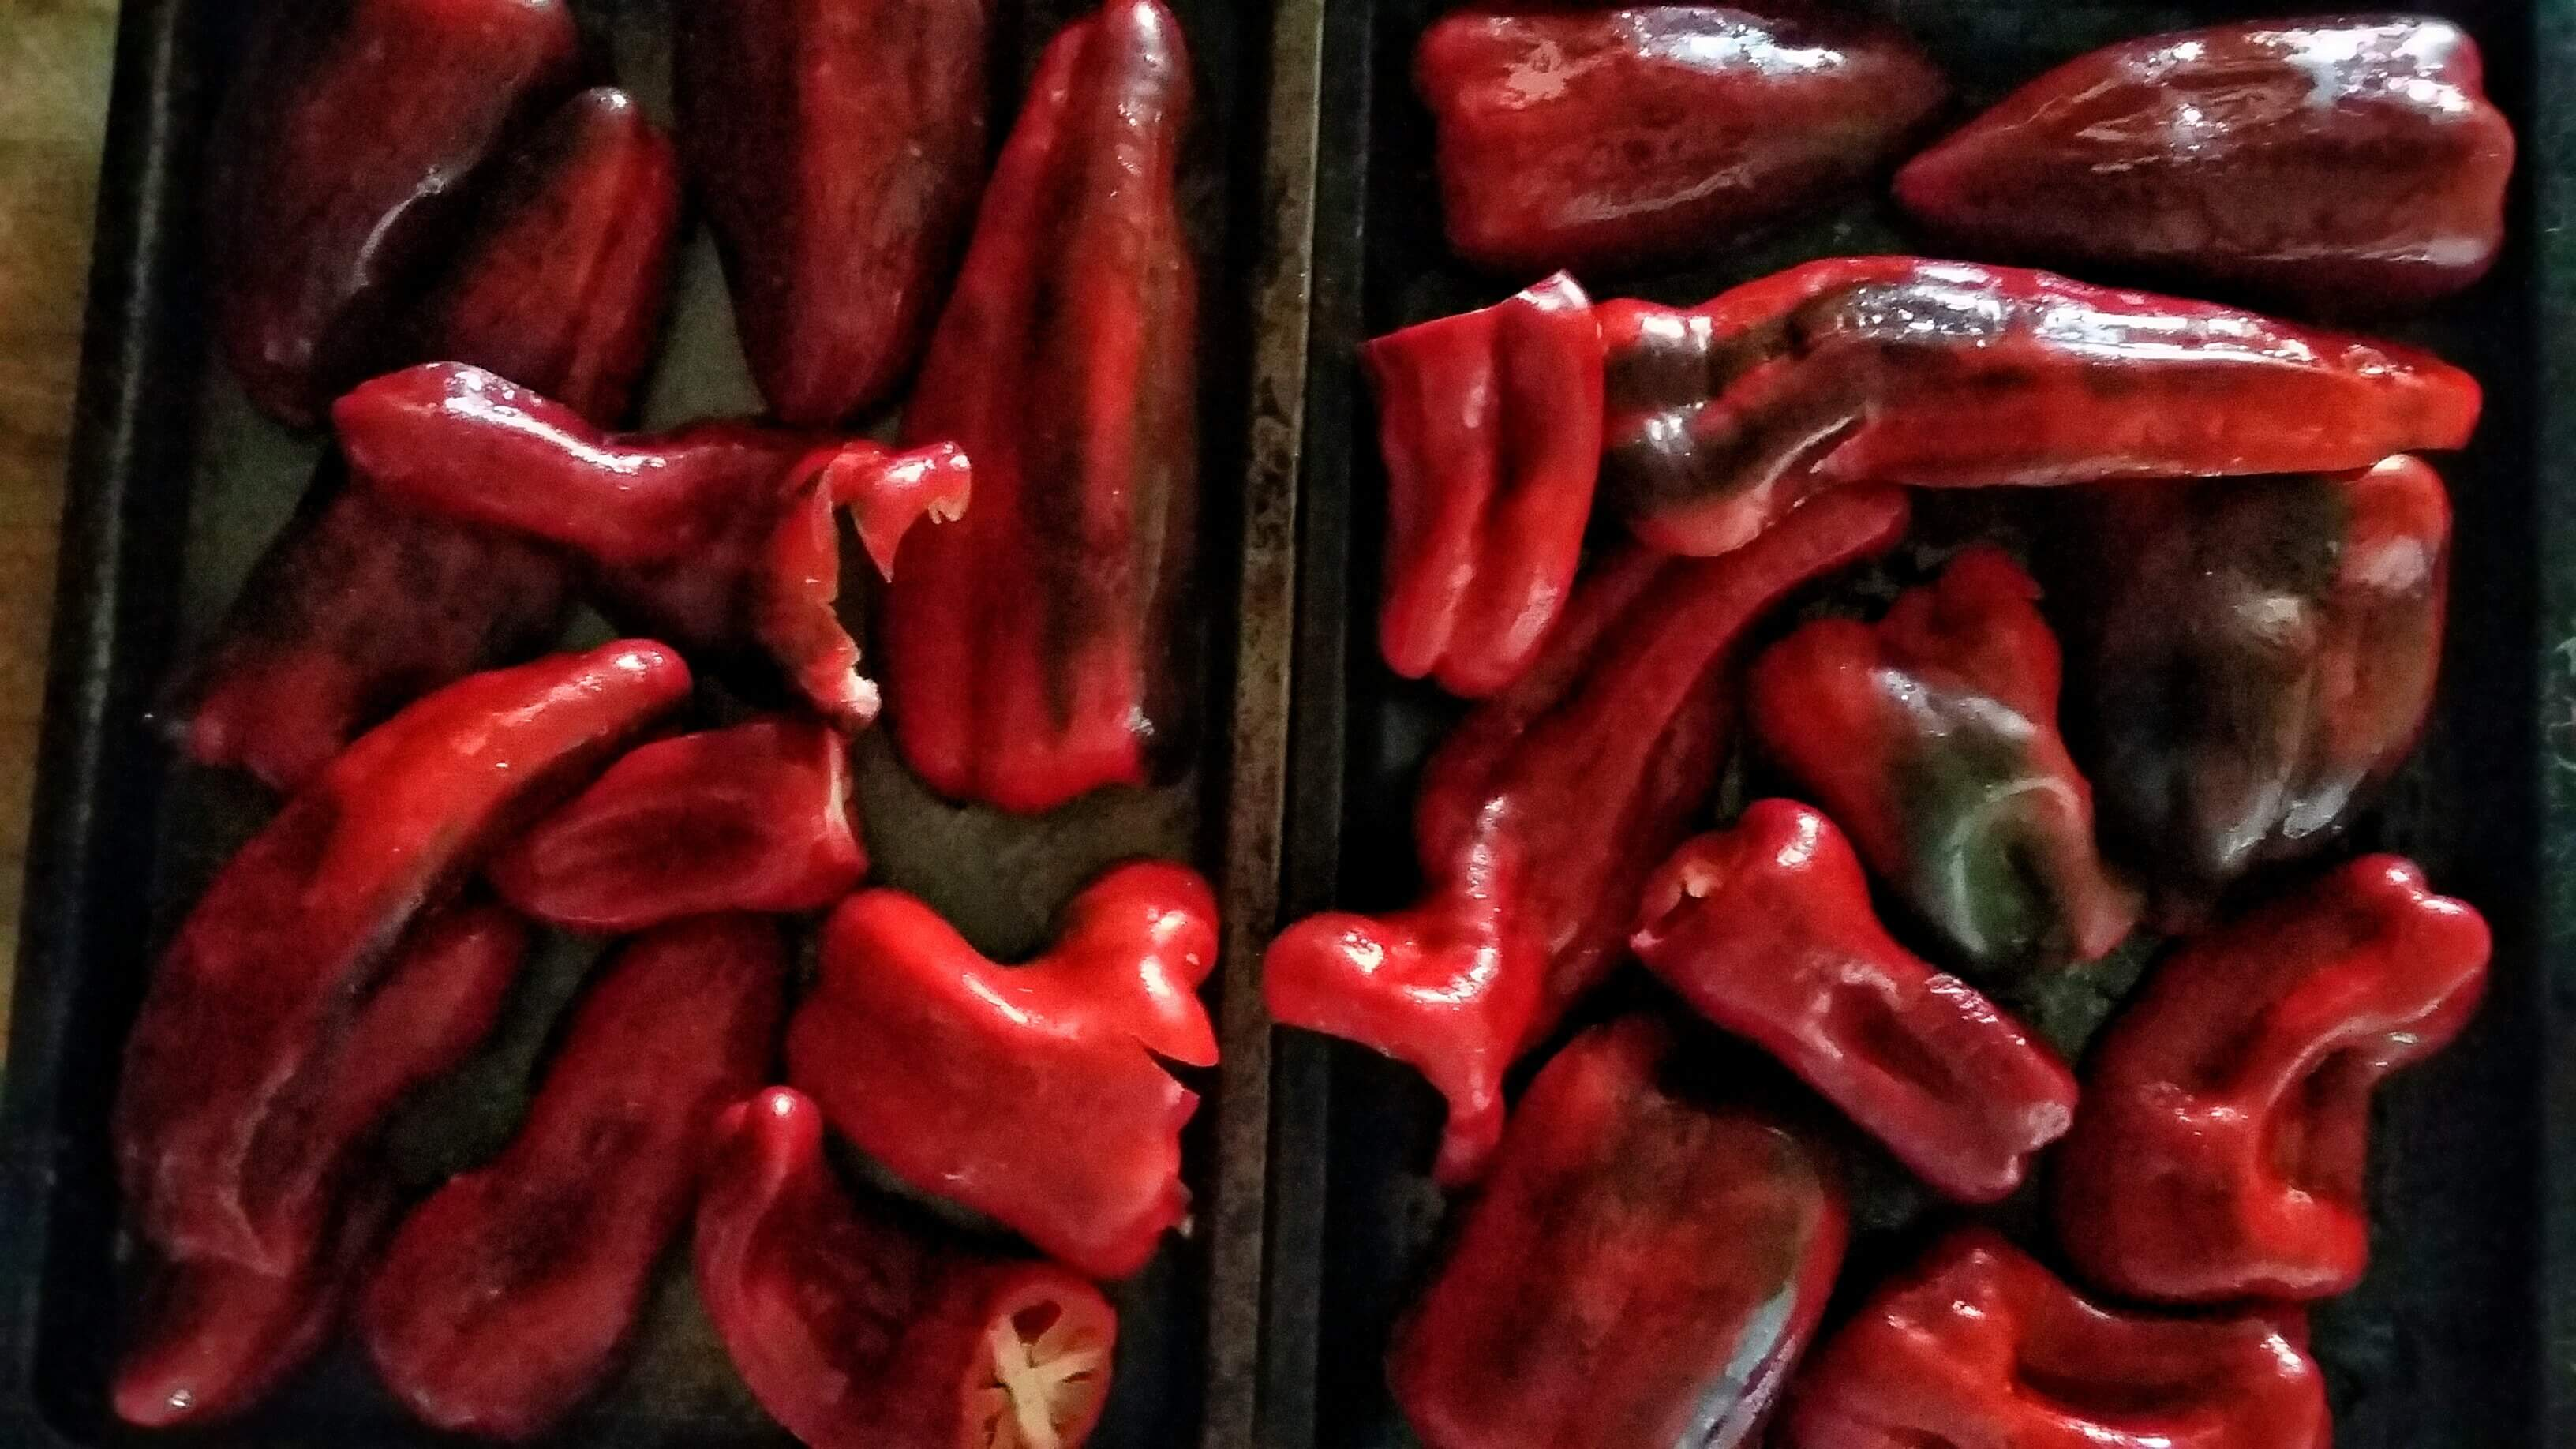 peppers3_162612-01.jpeg